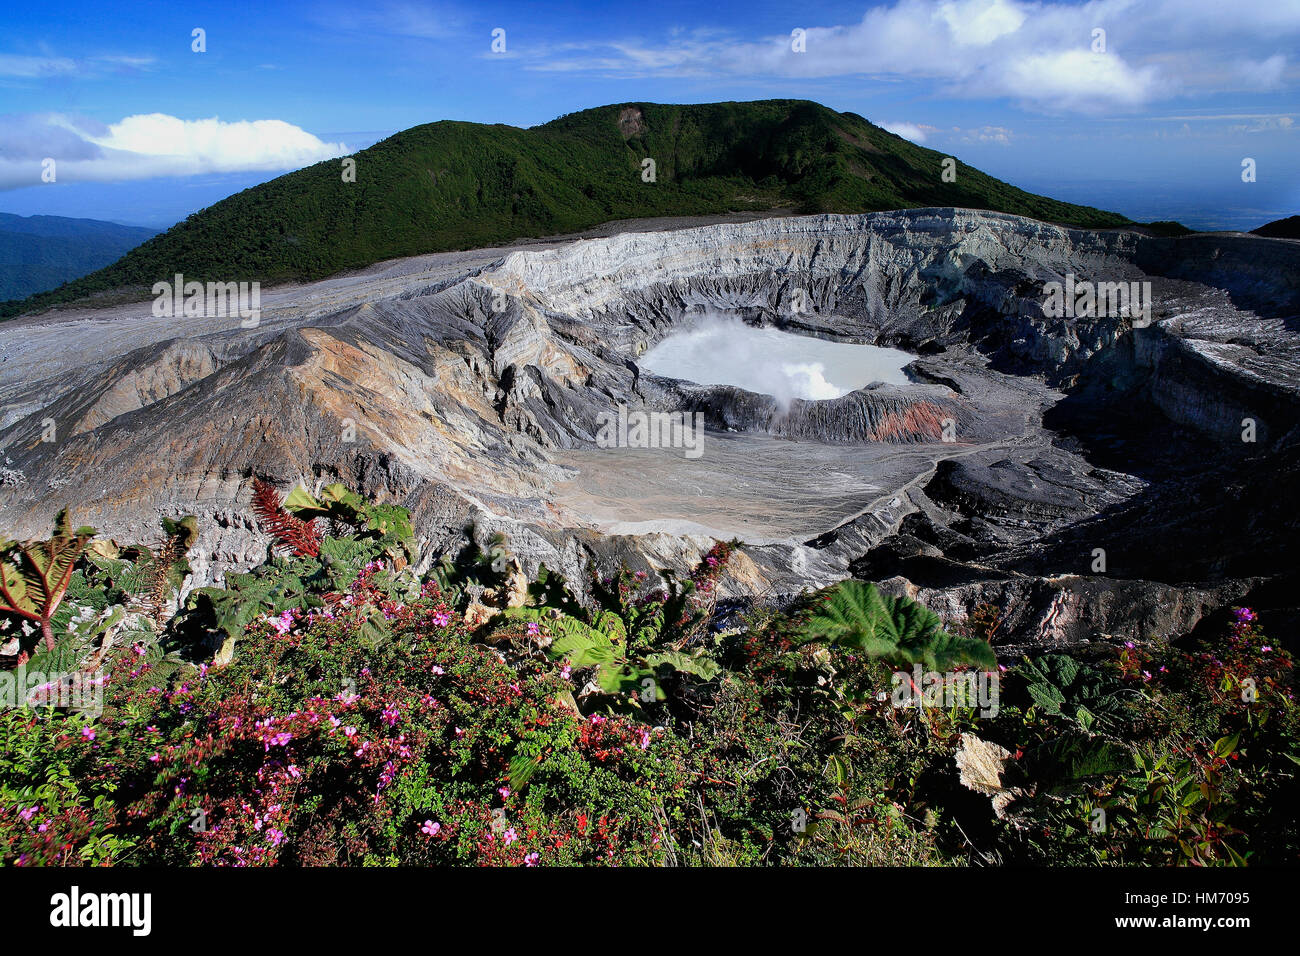 Cratère du volcan Poas, Alajuela, Costa Rica Photo Stock